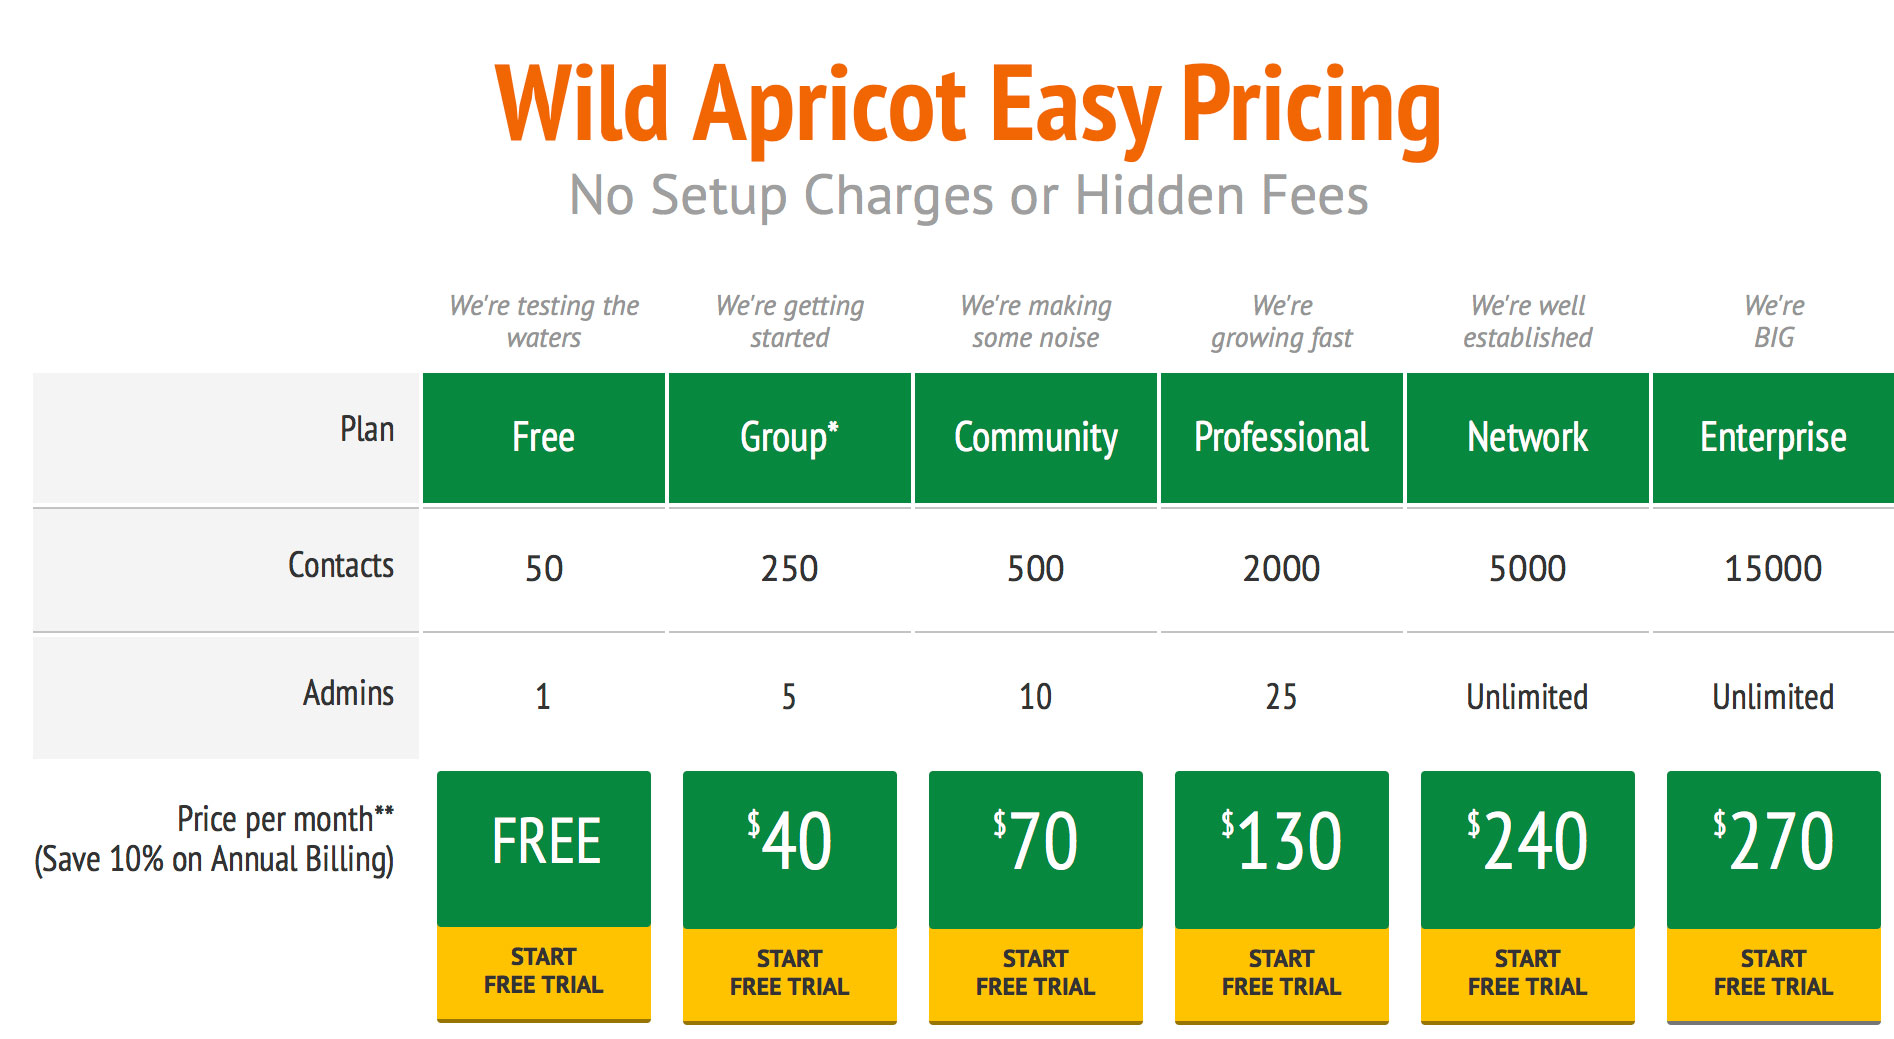 Wild Apricot Easy Pricing Plans